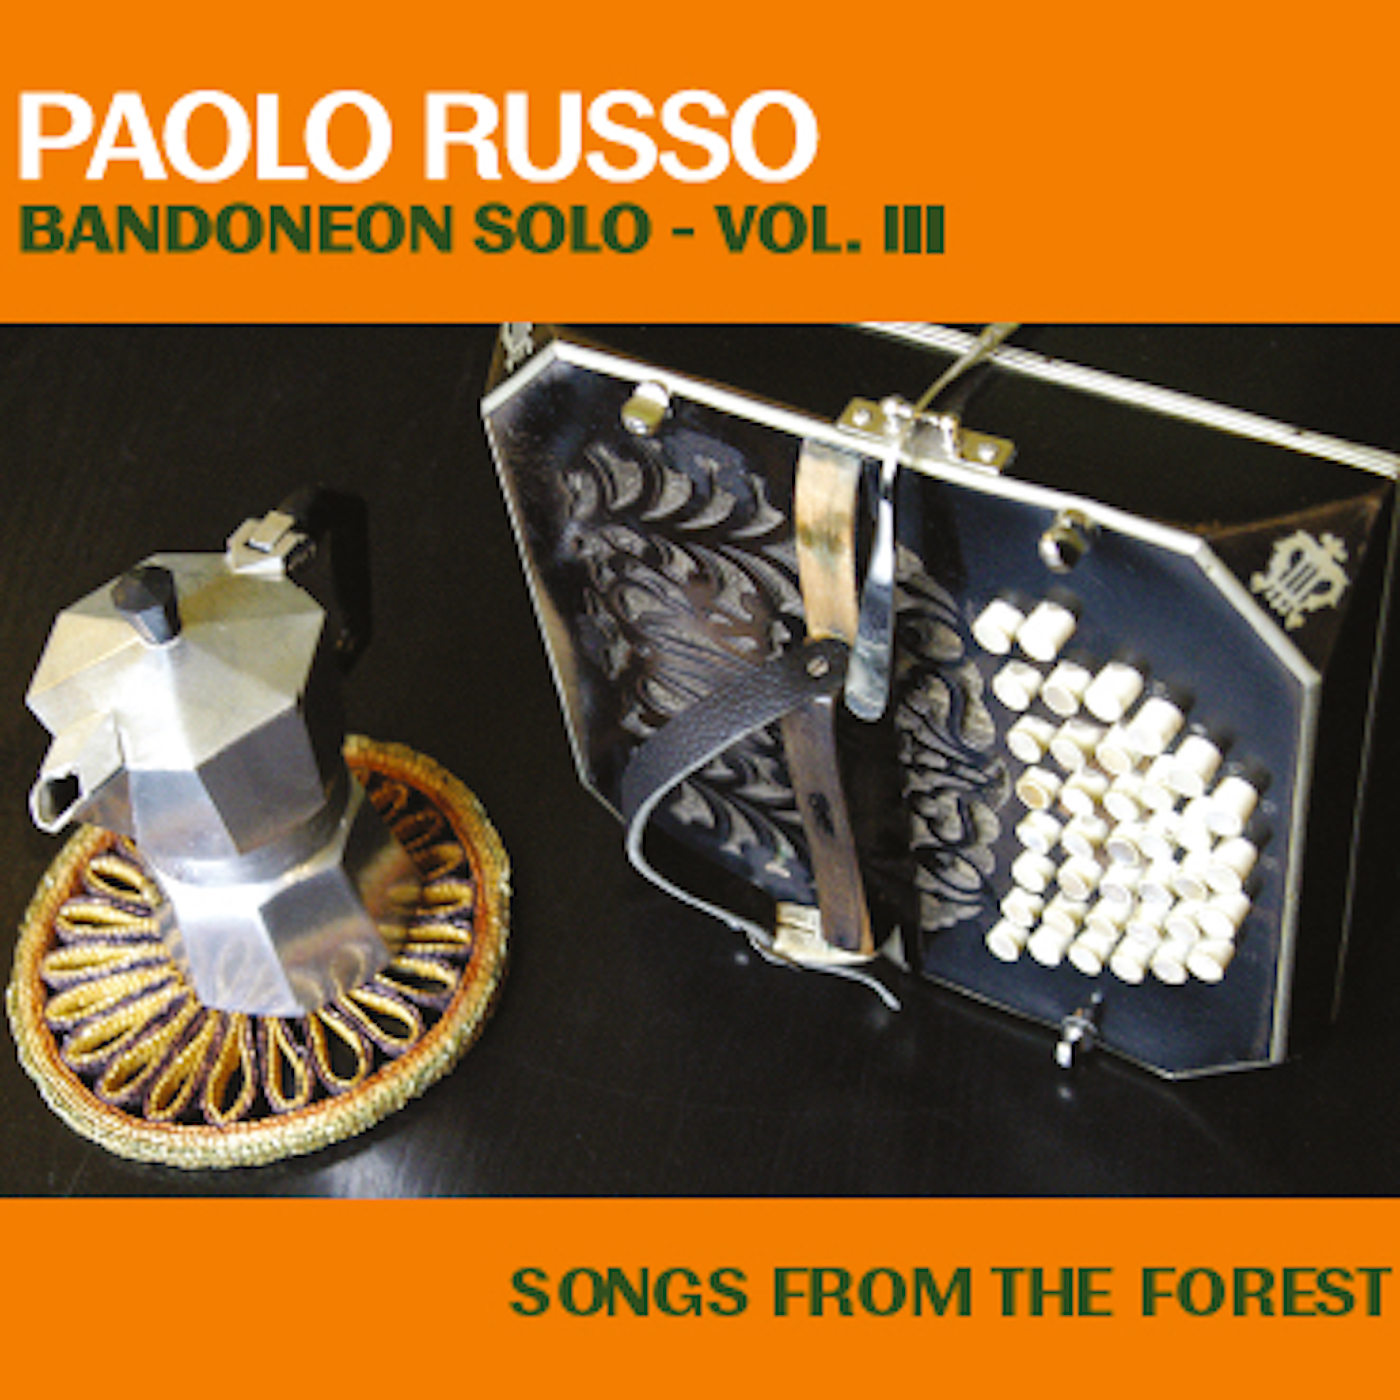 Paolo Russo bandoneon solo Vol III - songs from the forest